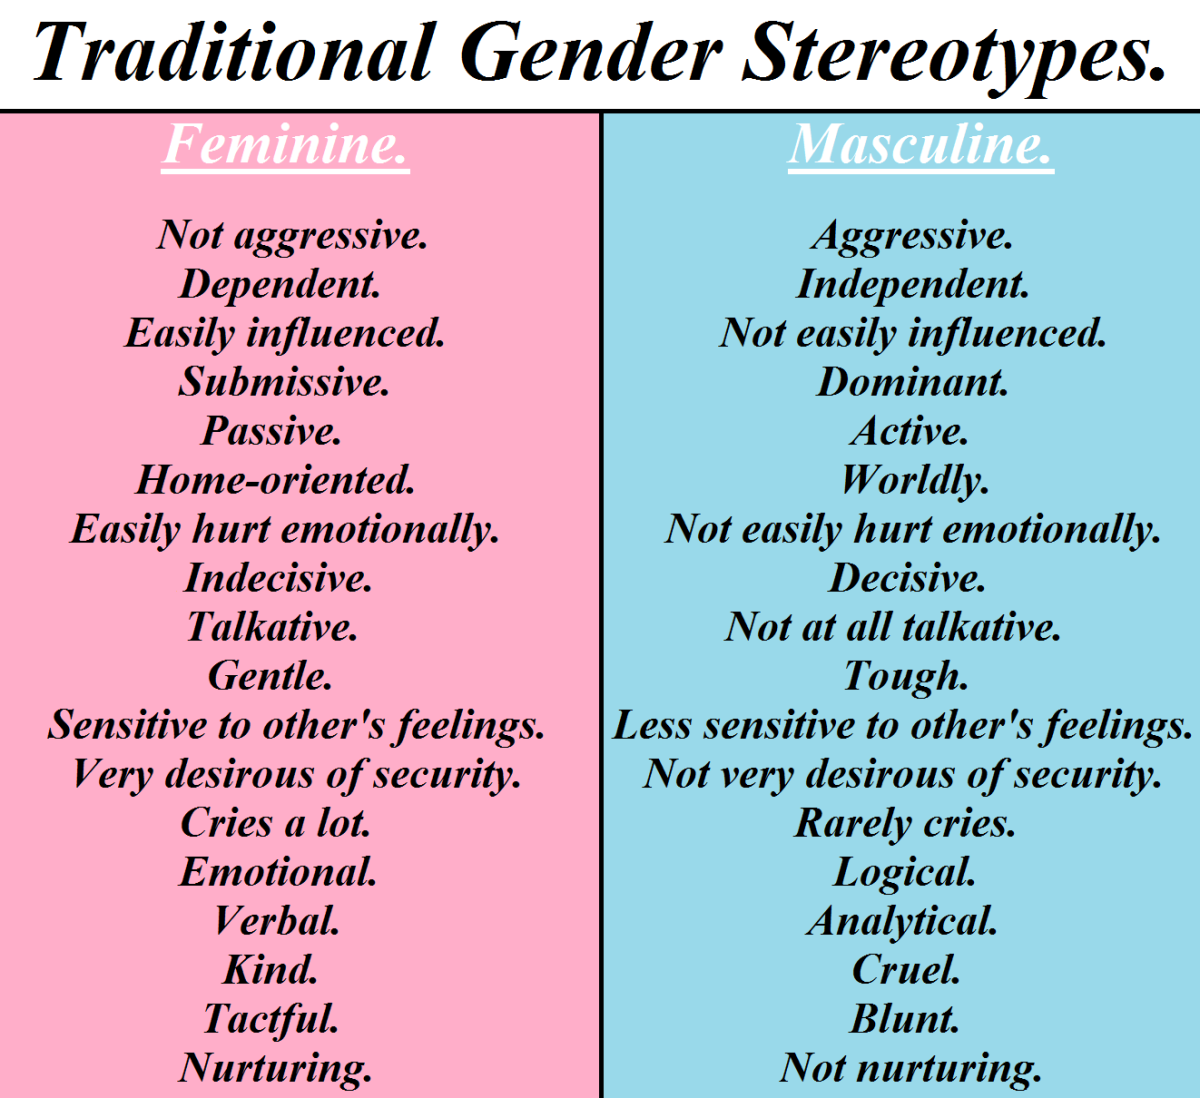 stereotypes in the classroom essay Free coursework on getting rid of the stereotypes and teaching in a multicultural perspective from essayukcom, the uk essays company for essay, dissertation and coursework writing.